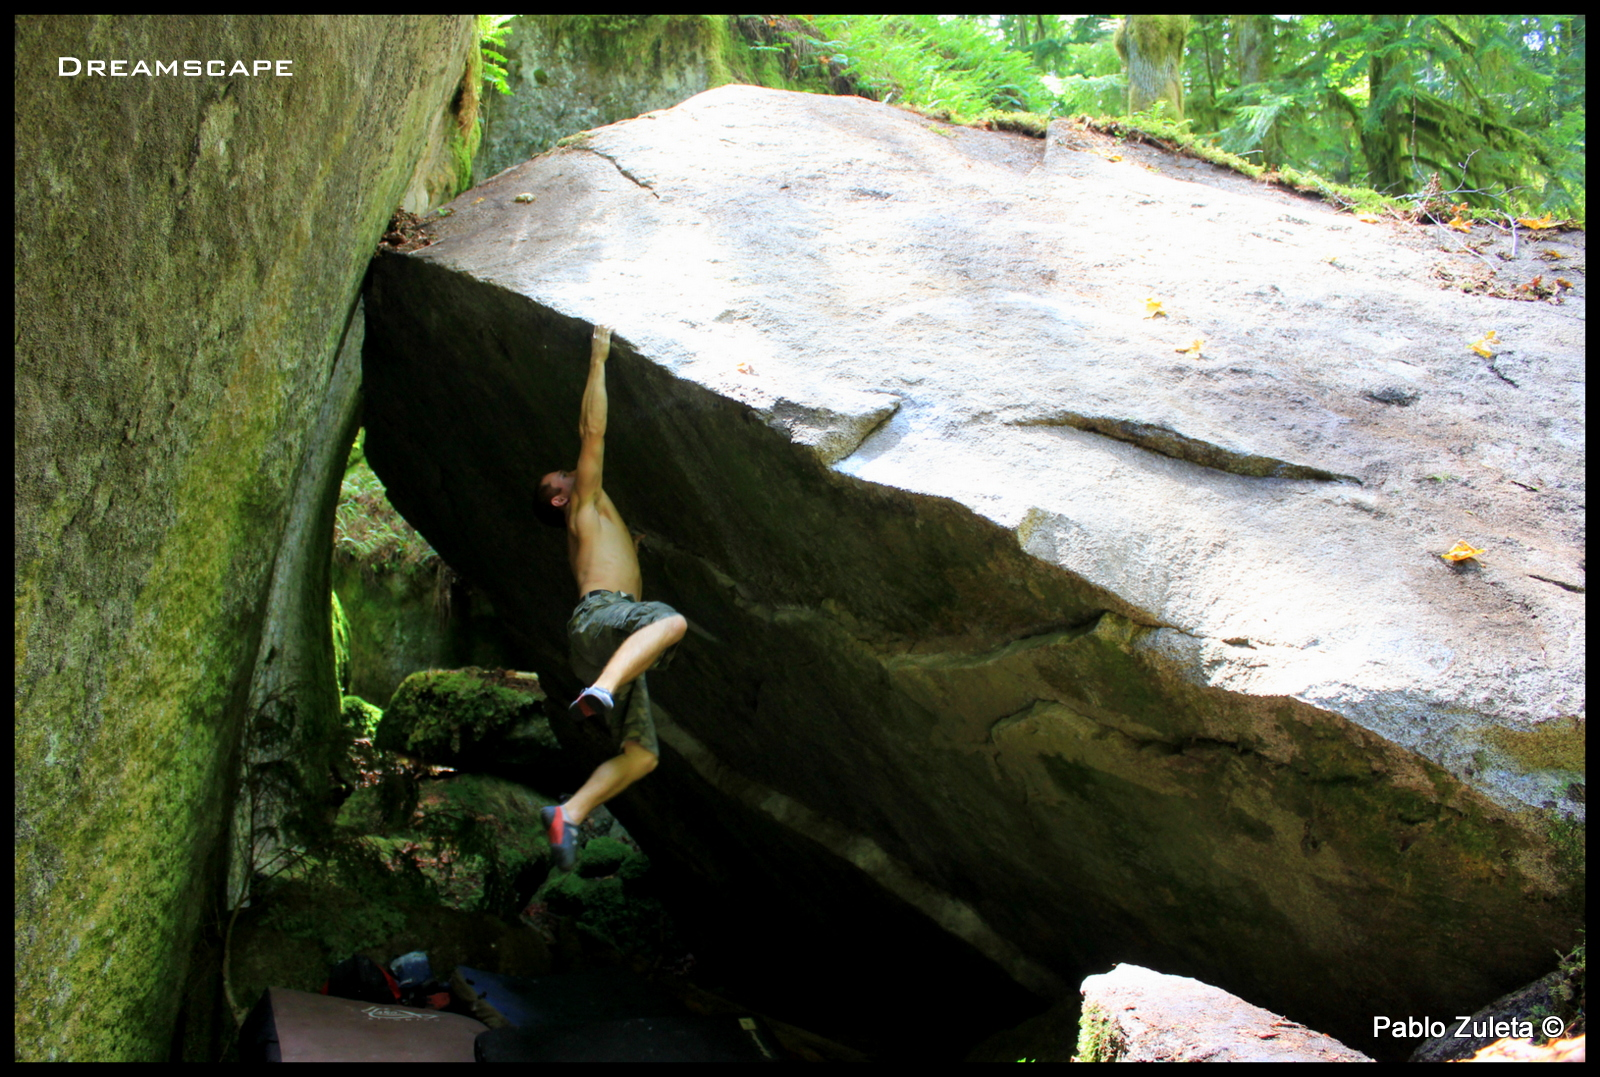 Sticking the lip of Dreamscape-V9